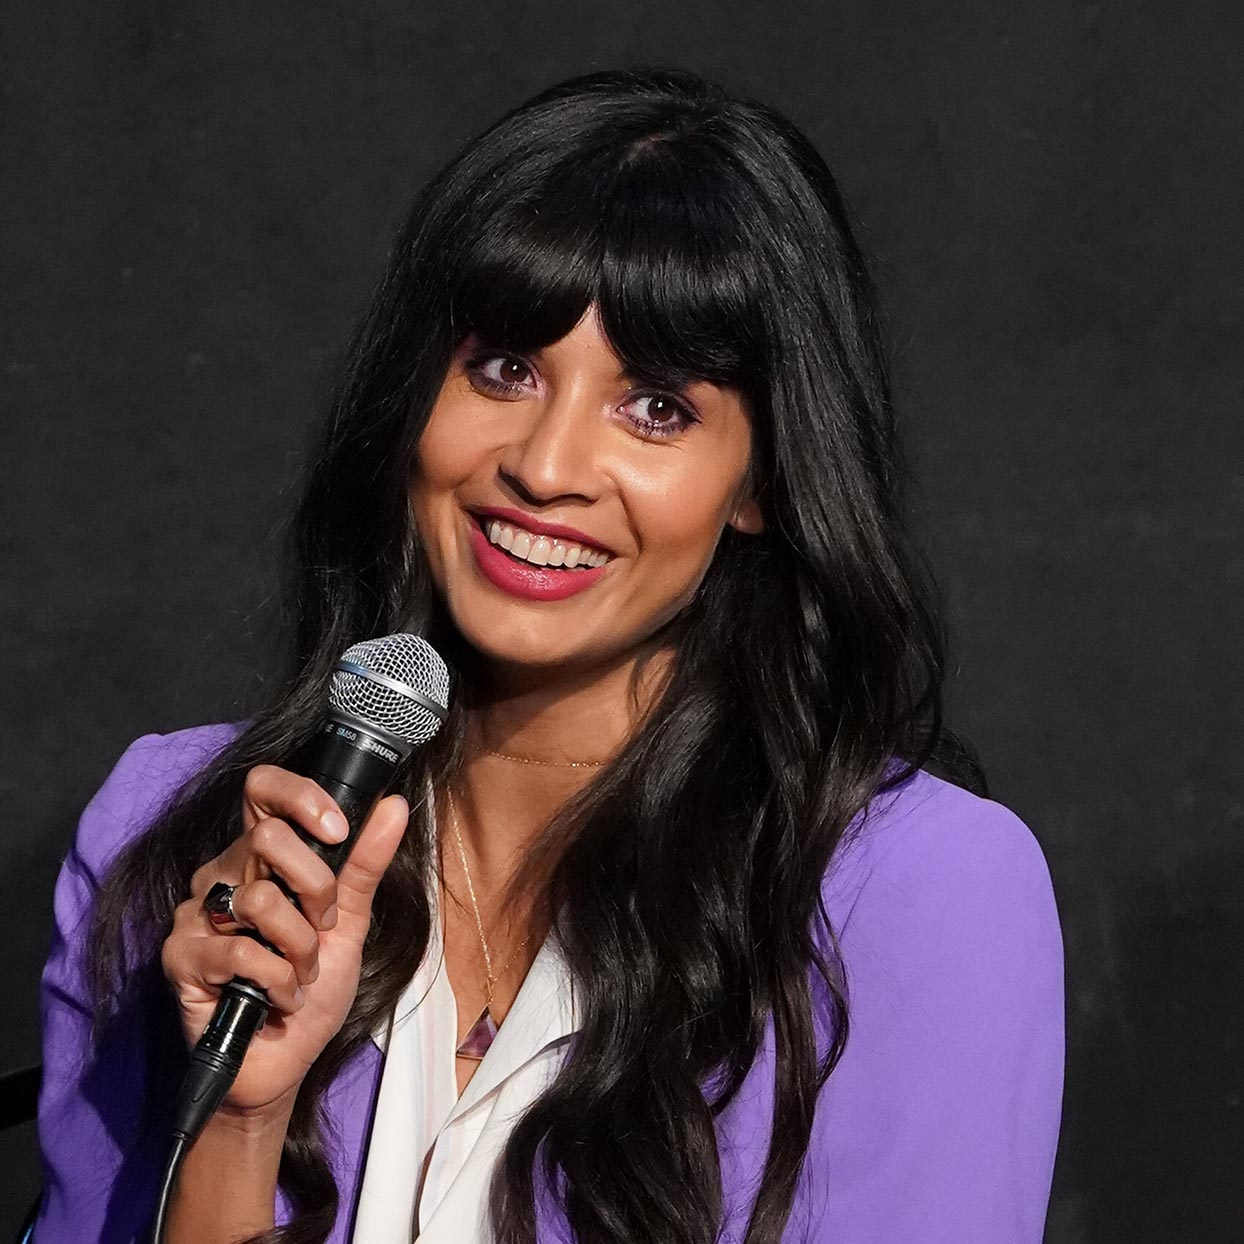 Jameela Jamil Wants to De-Stigmatize Loneliness Through Her Partnership with Bumble BFF